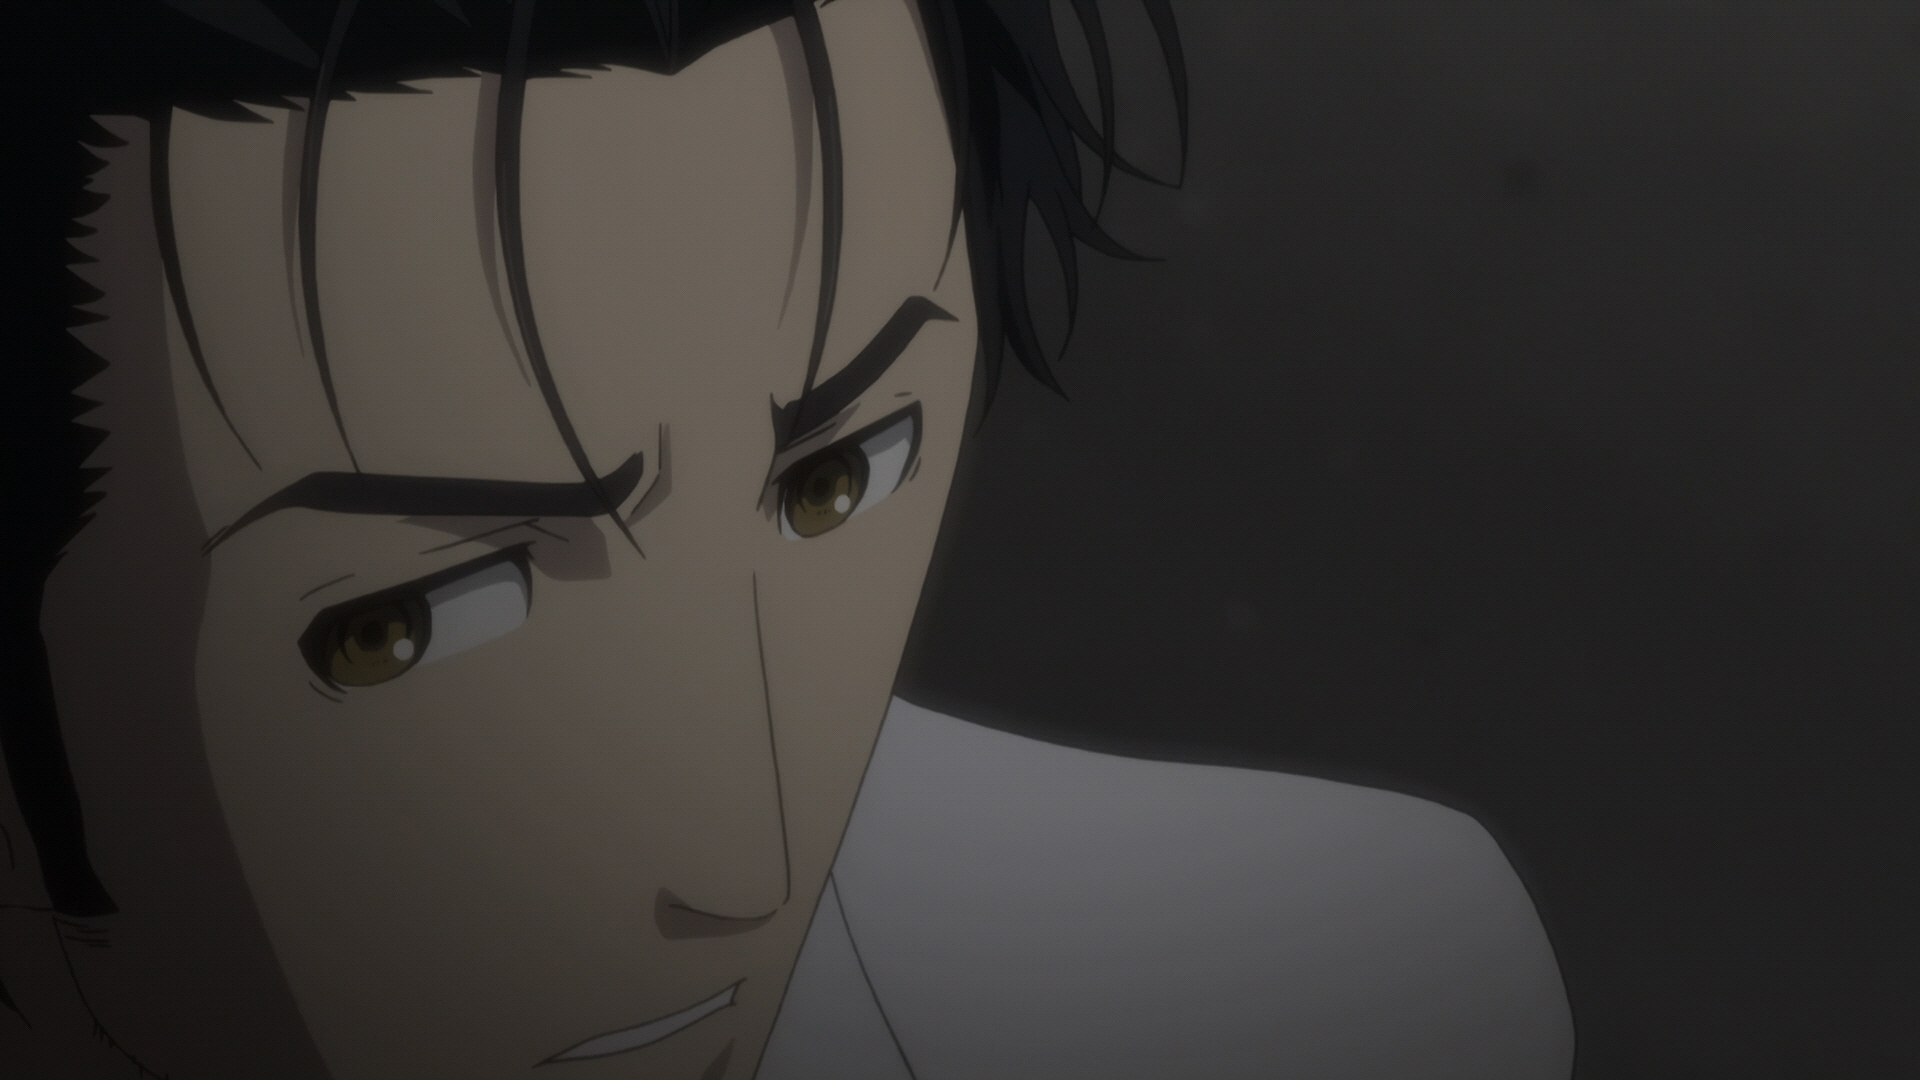 Steins Gate Episode 10 Chaos Theory Homeostasis III 10